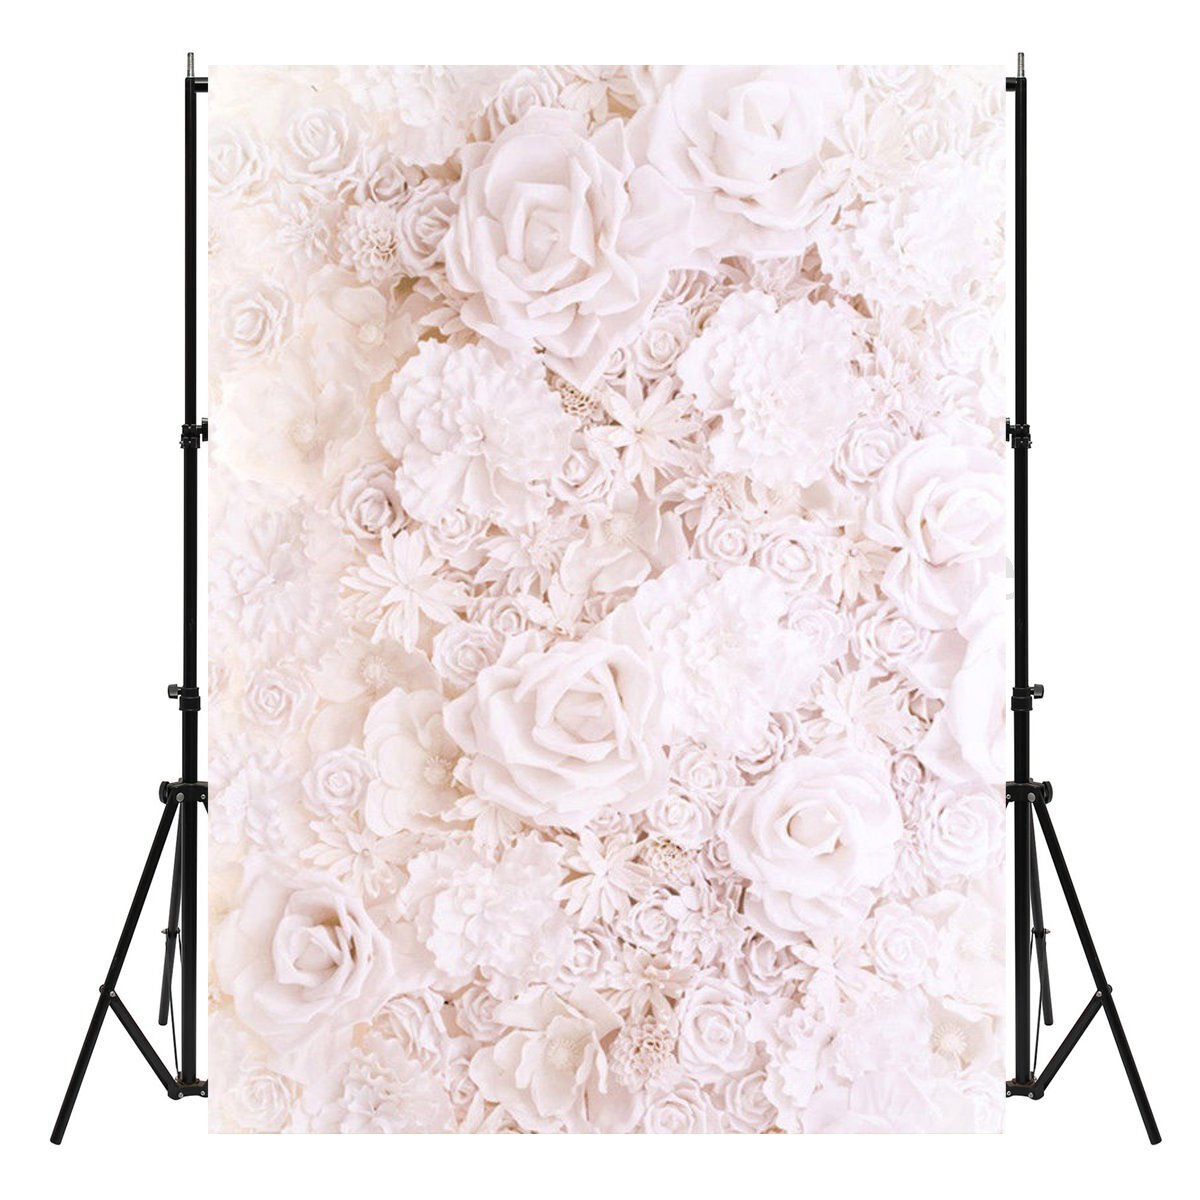 Flowers Baby Photography Backgrounds 3x5ft Vinyl Studio Photo Backdrops Bright  Color Rich Patterns